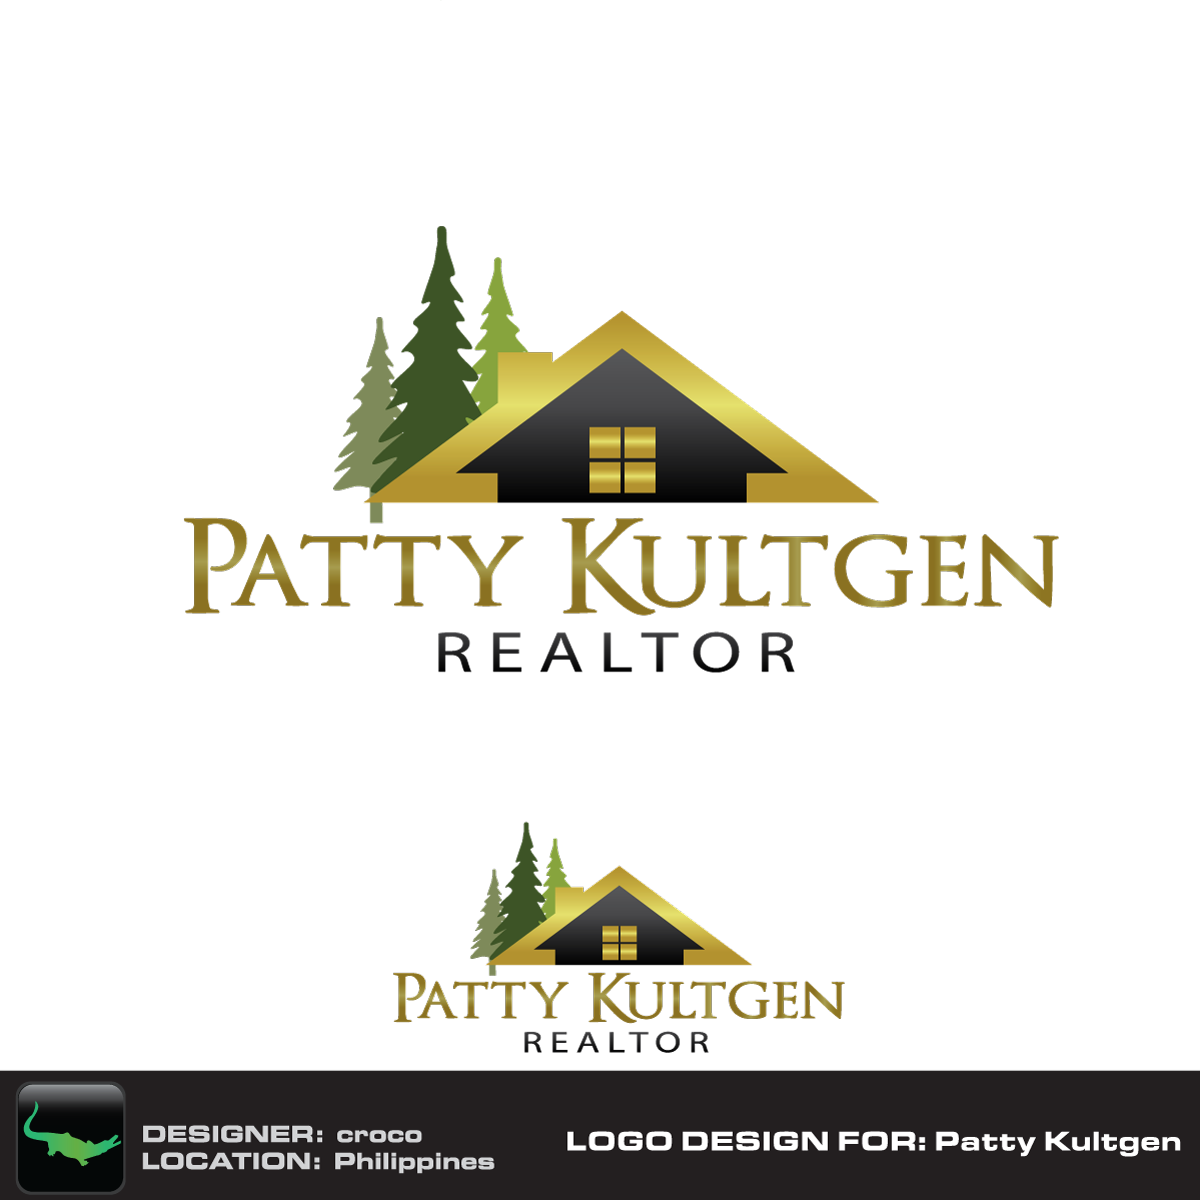 Logo Design by rockin - Entry No. 41 in the Logo Design Contest Logo Design Needed for Exciting New Company Patricia Kultgen Realtor.